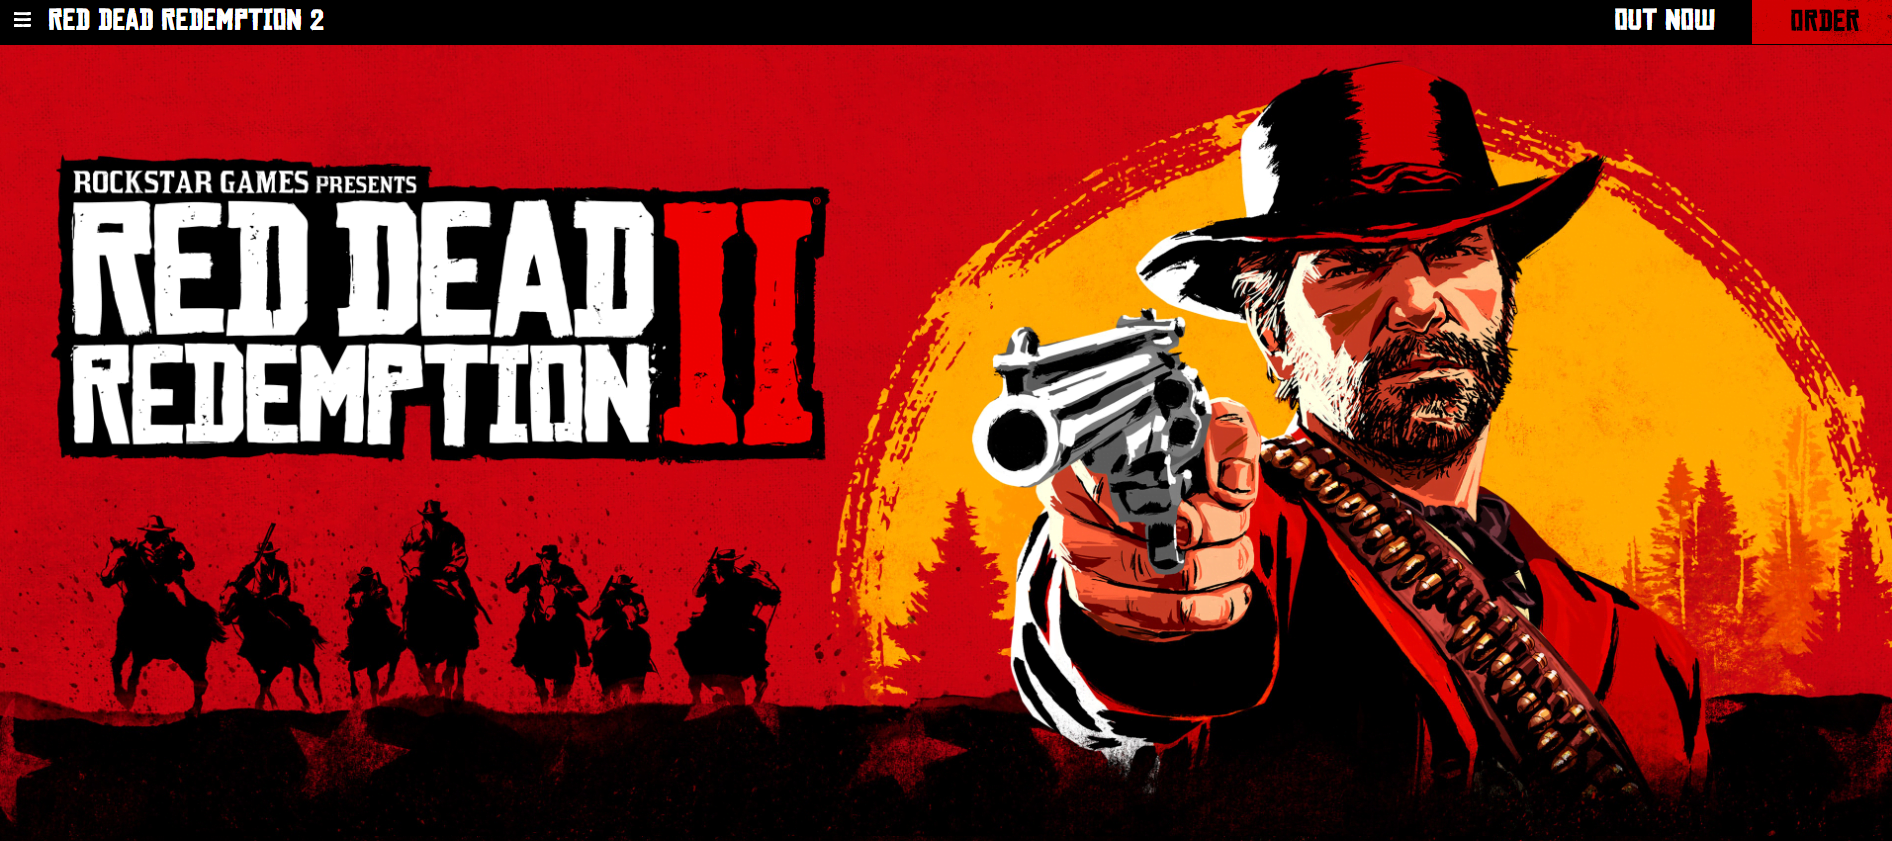 Red Dead Redemption 2 might be coming on PC